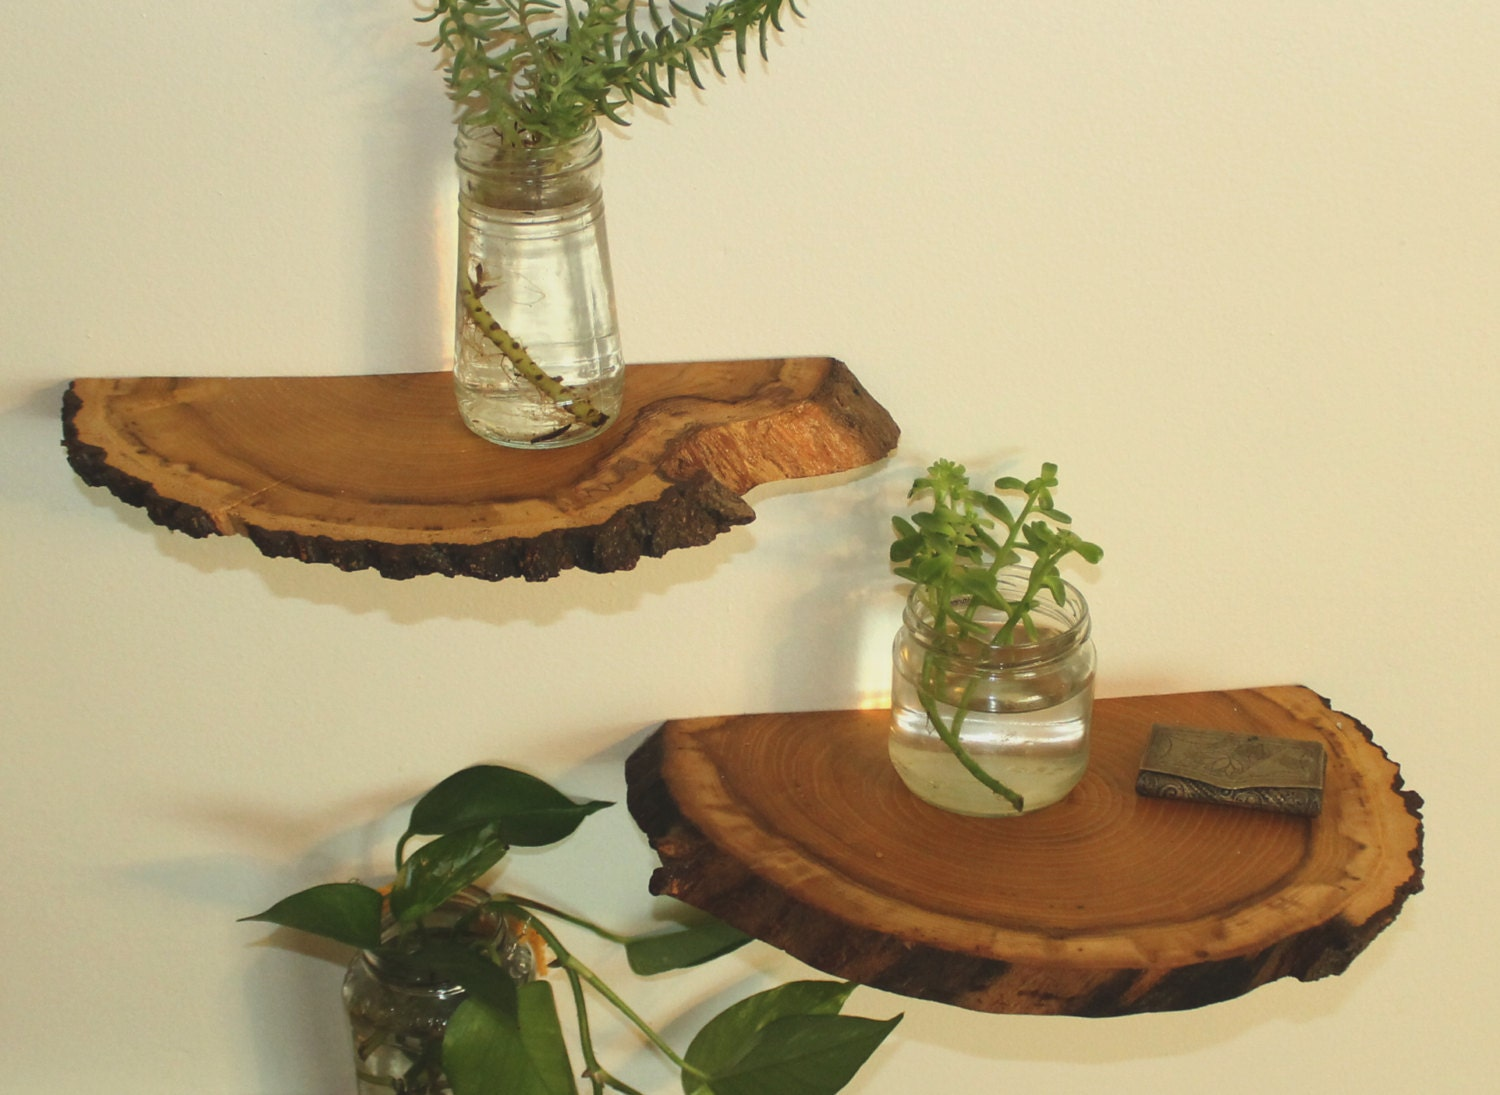 Home Decor Made From Recycled Materials Shelves Wood Slab Shelves Wood Shelf Natural Wood Shelves